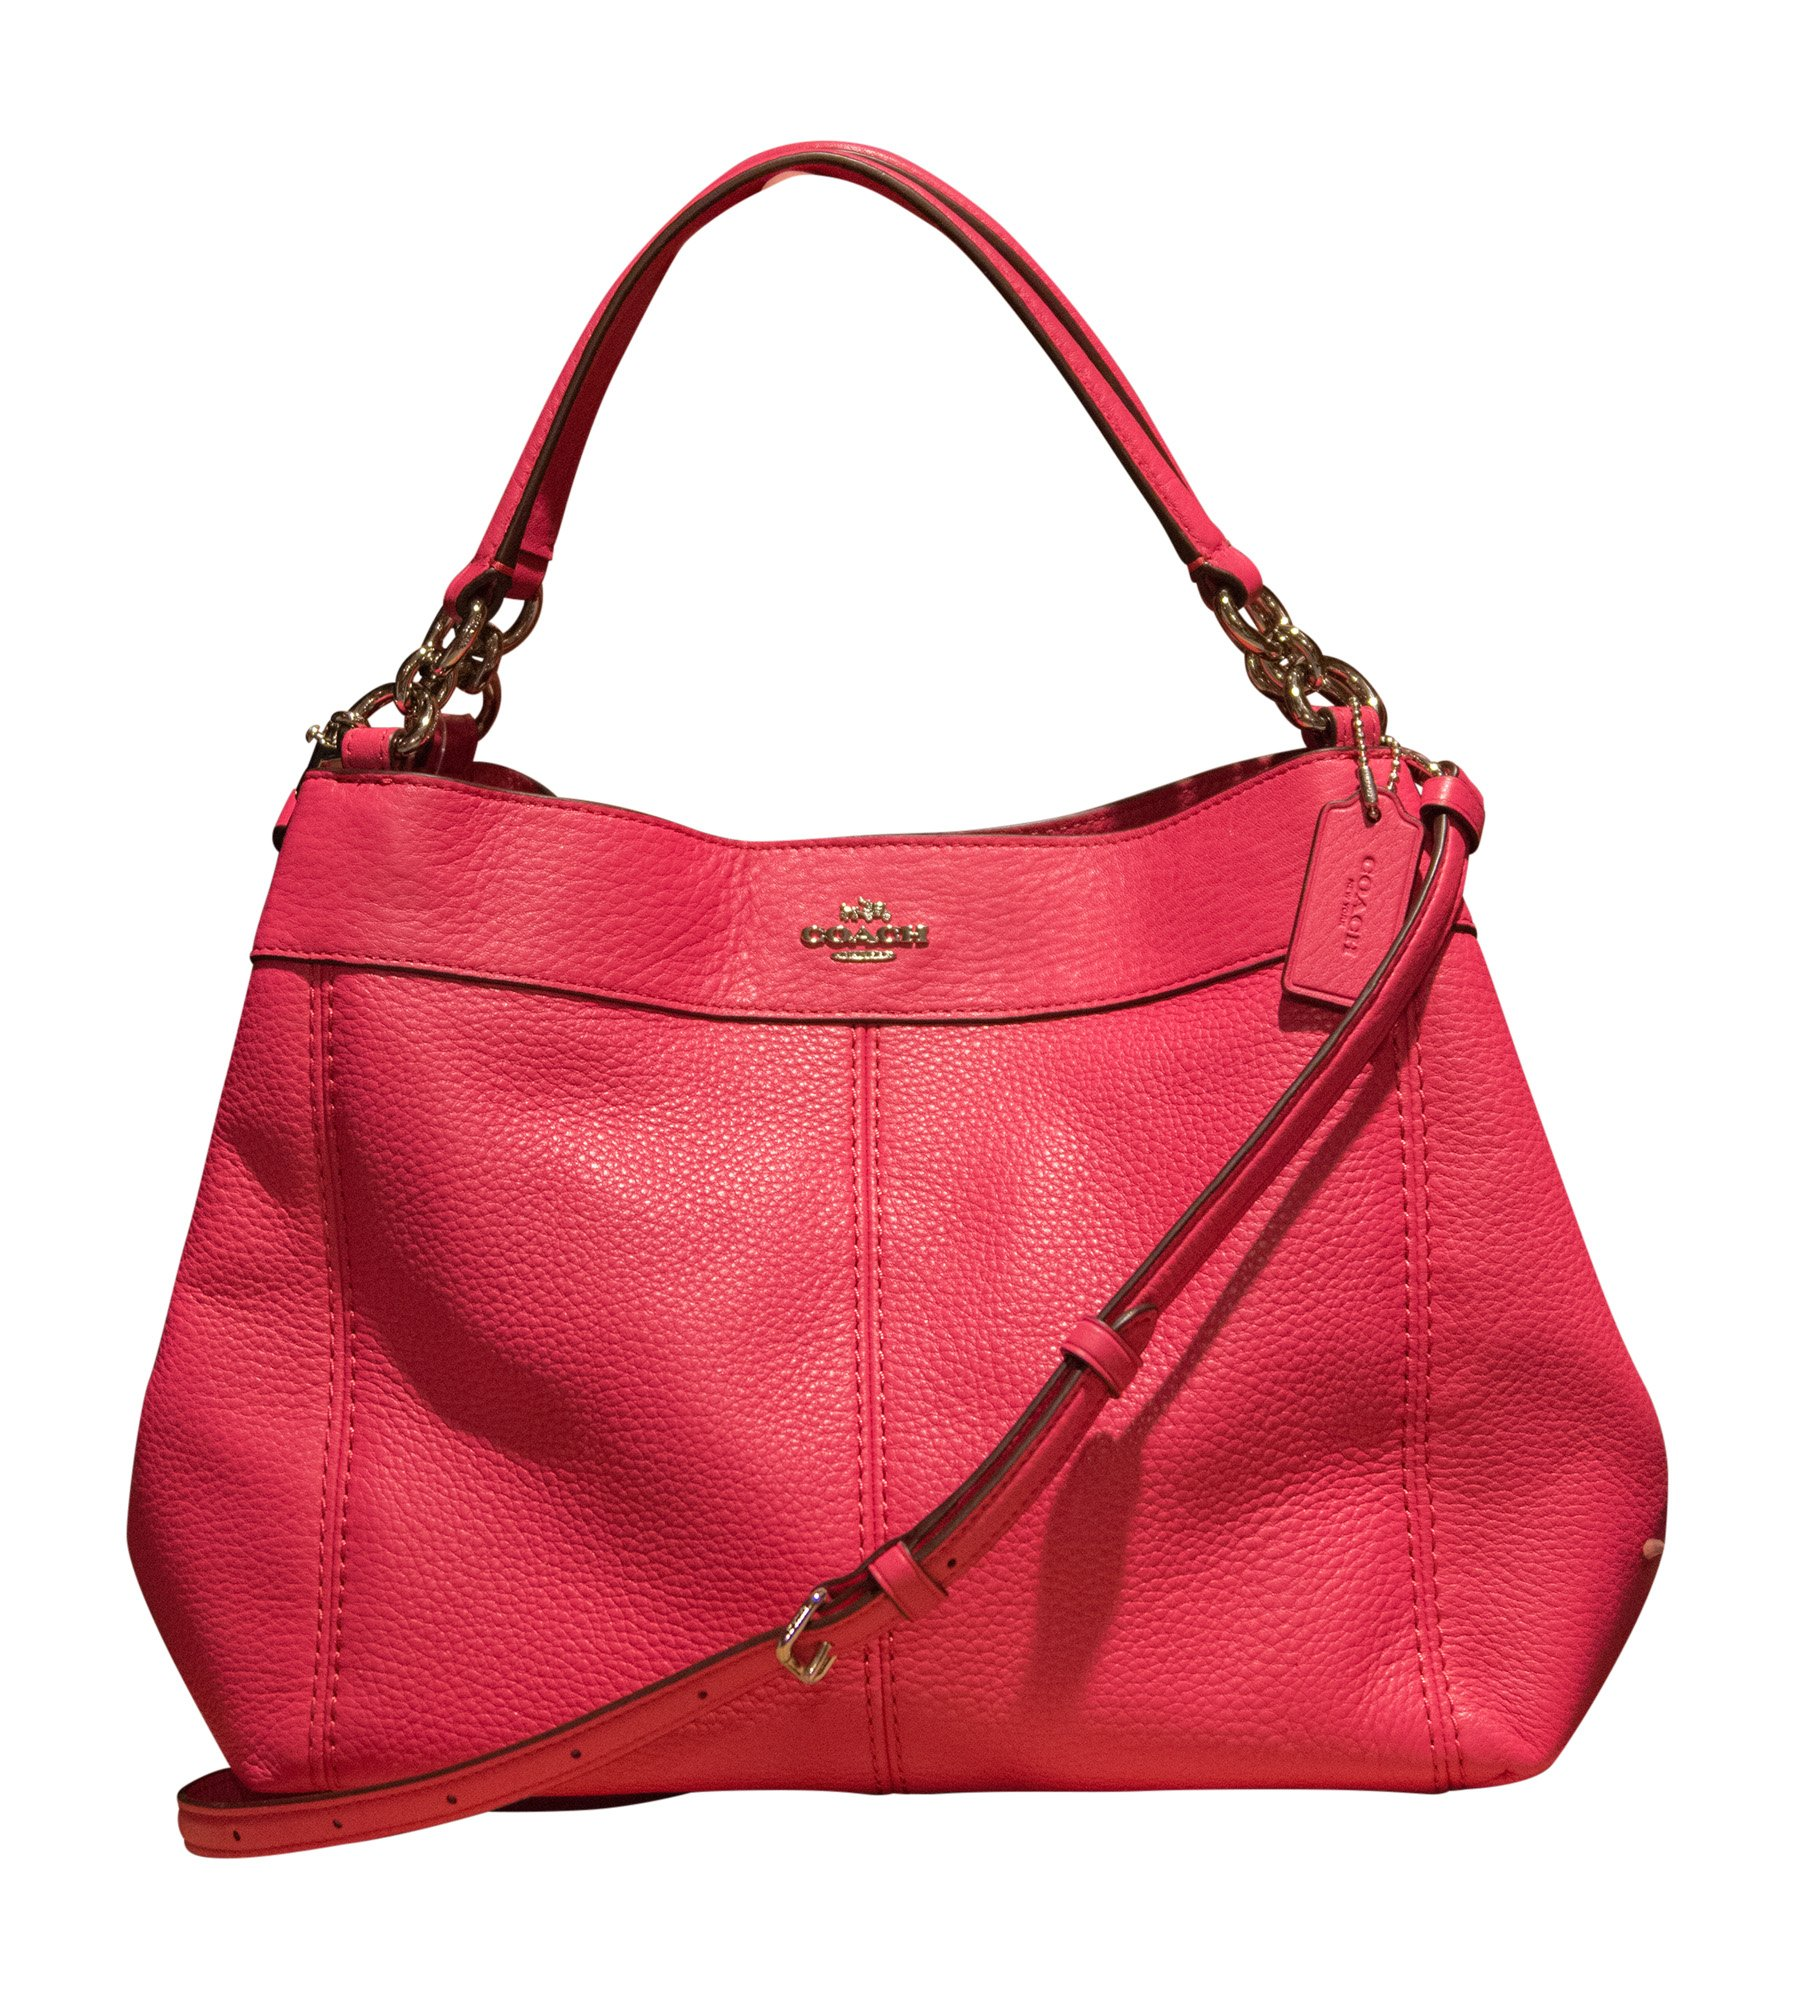 Coach Pebbled Leather Small Lexy Shoulder Bag, Magenta